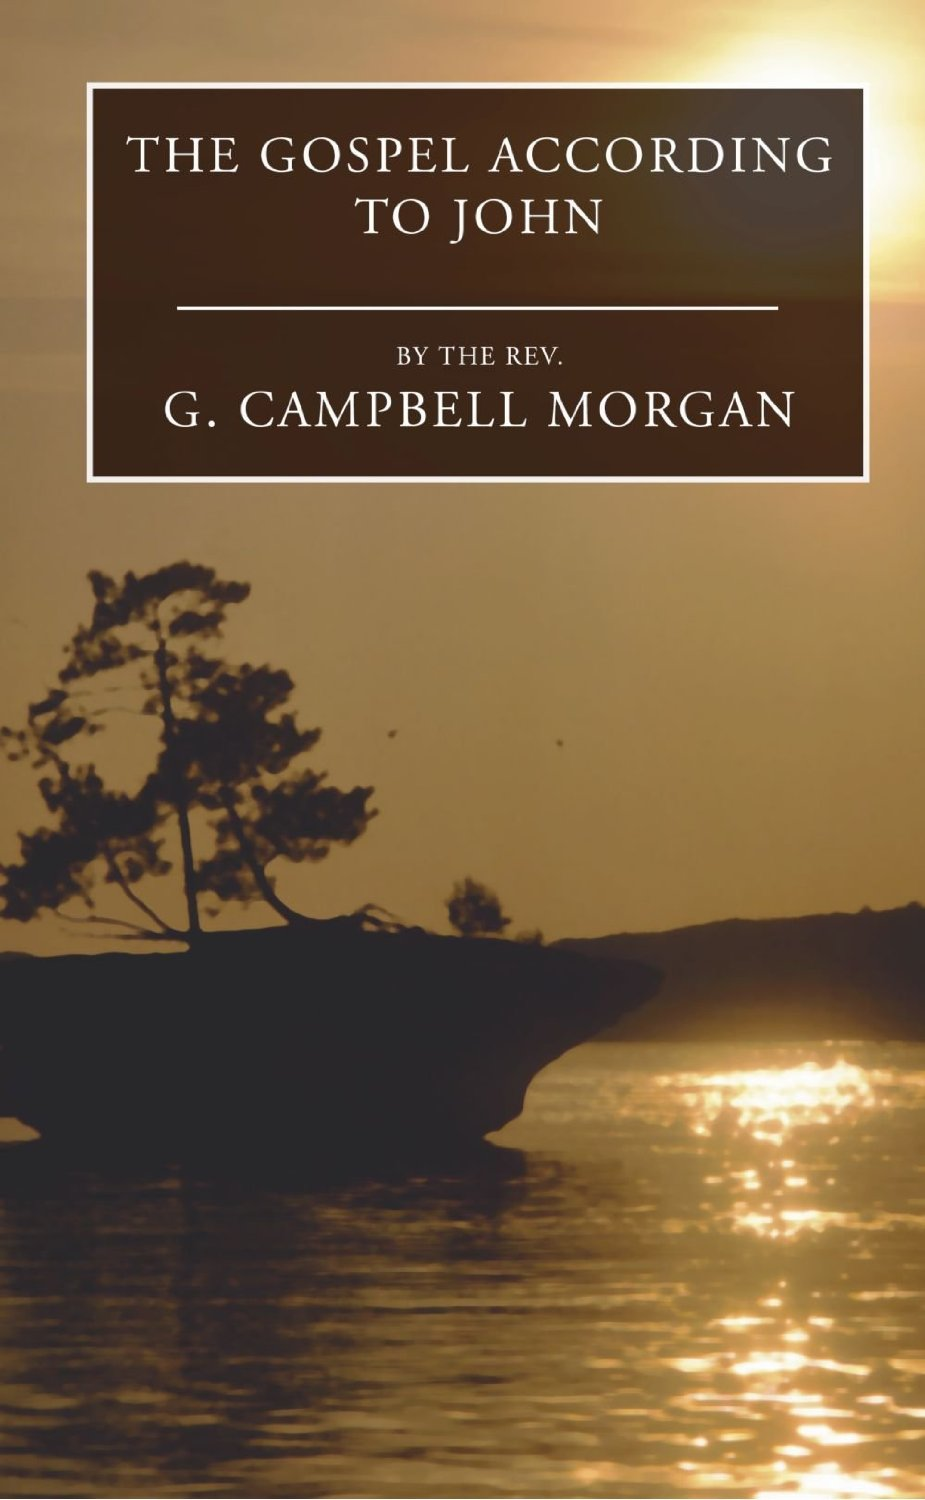 G. Campbell Morgan-The Gospel According To John-